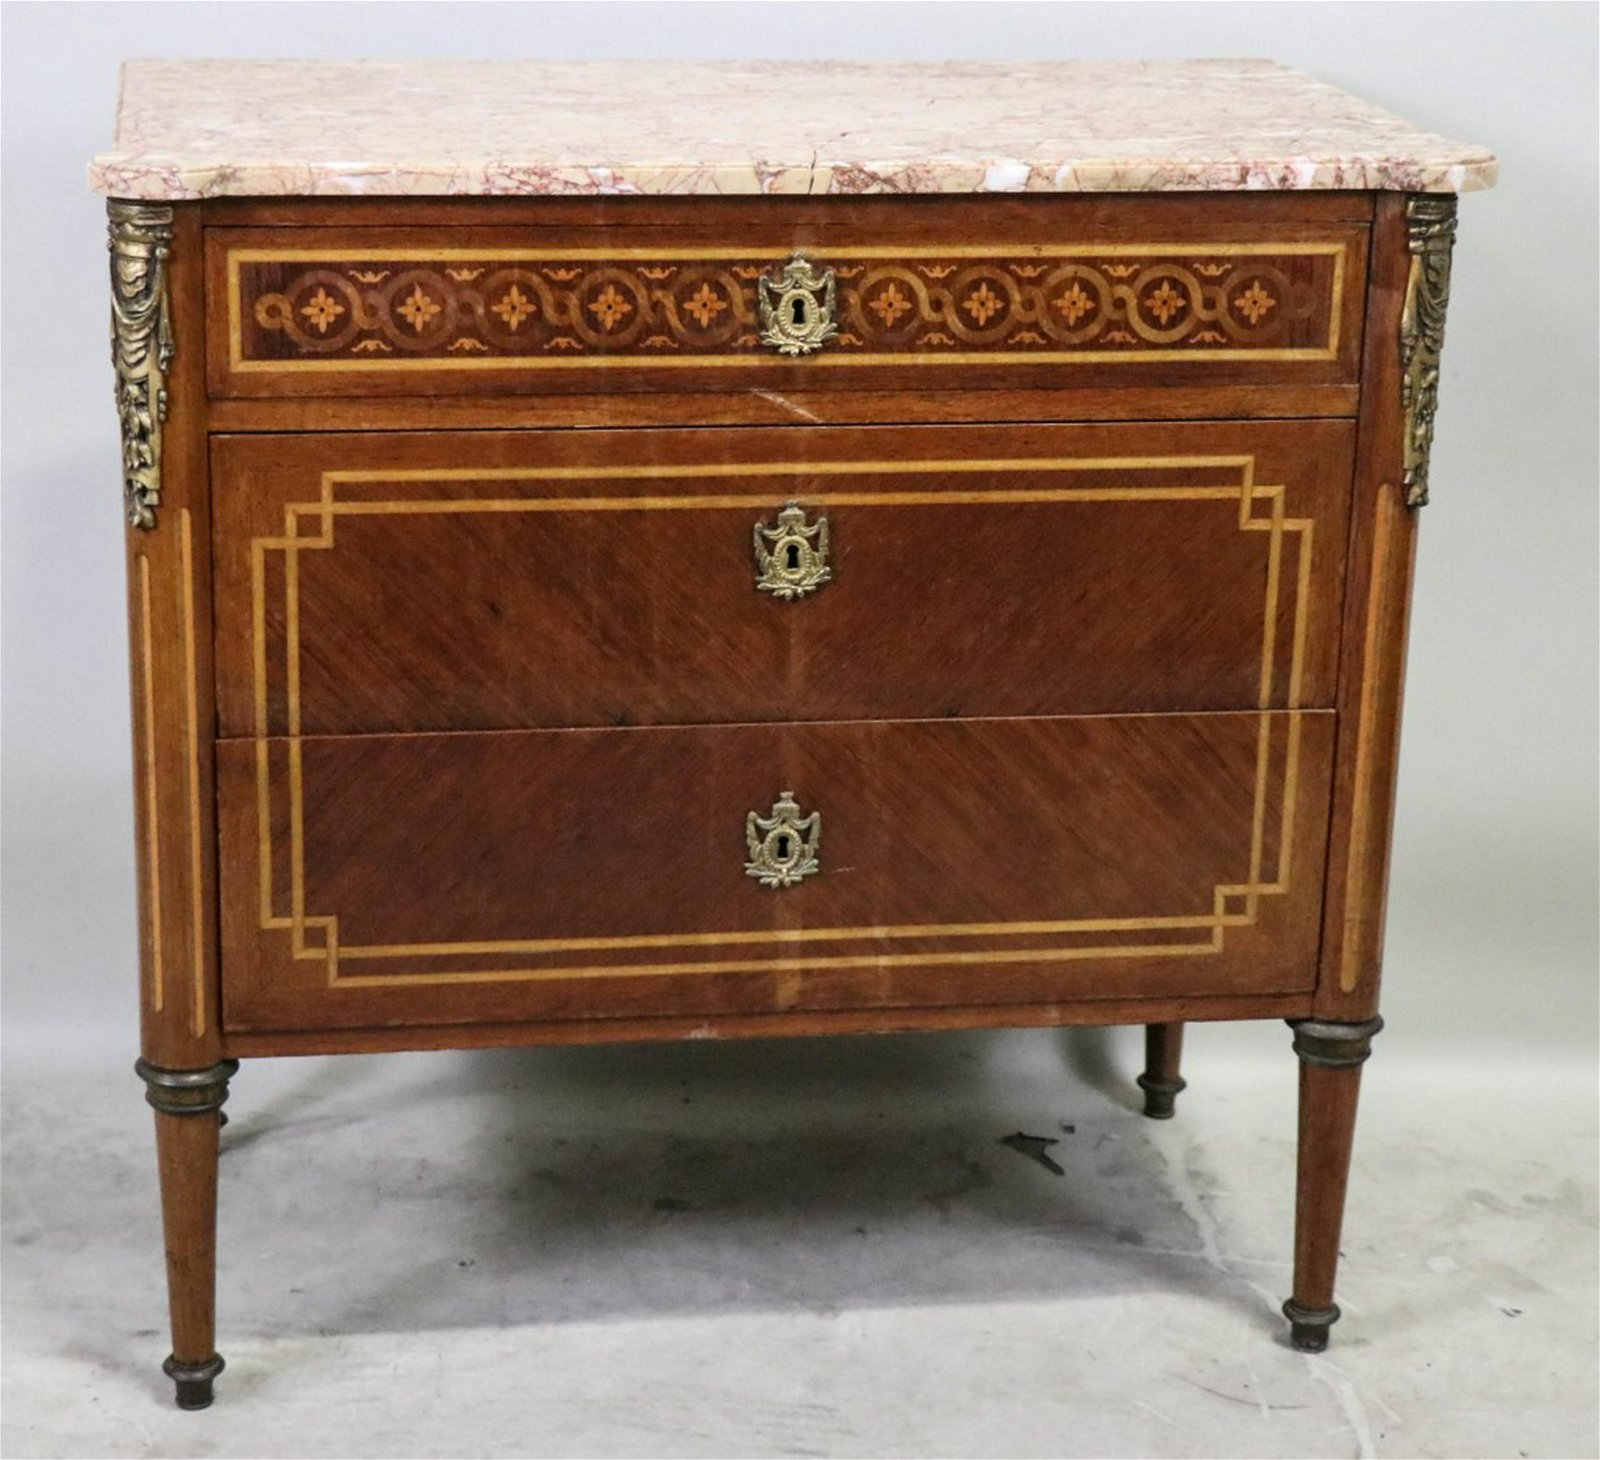 19th CENTURY FRENCH MAHOGANY MARBLE TOP CHEST